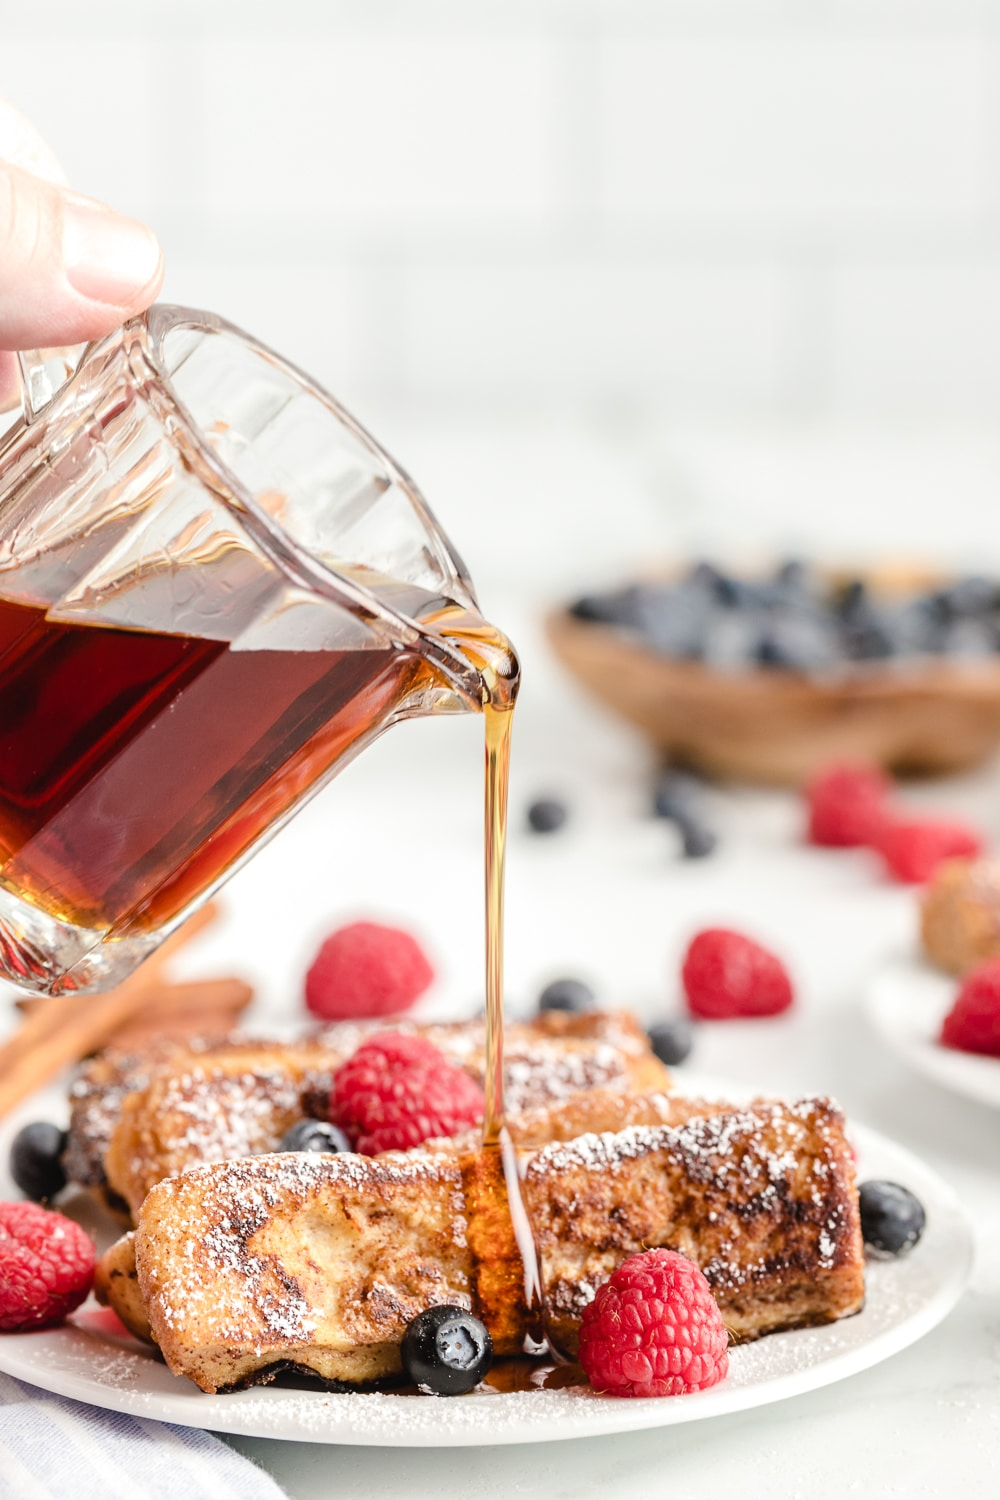 French Toast Sticks Served with Syrup